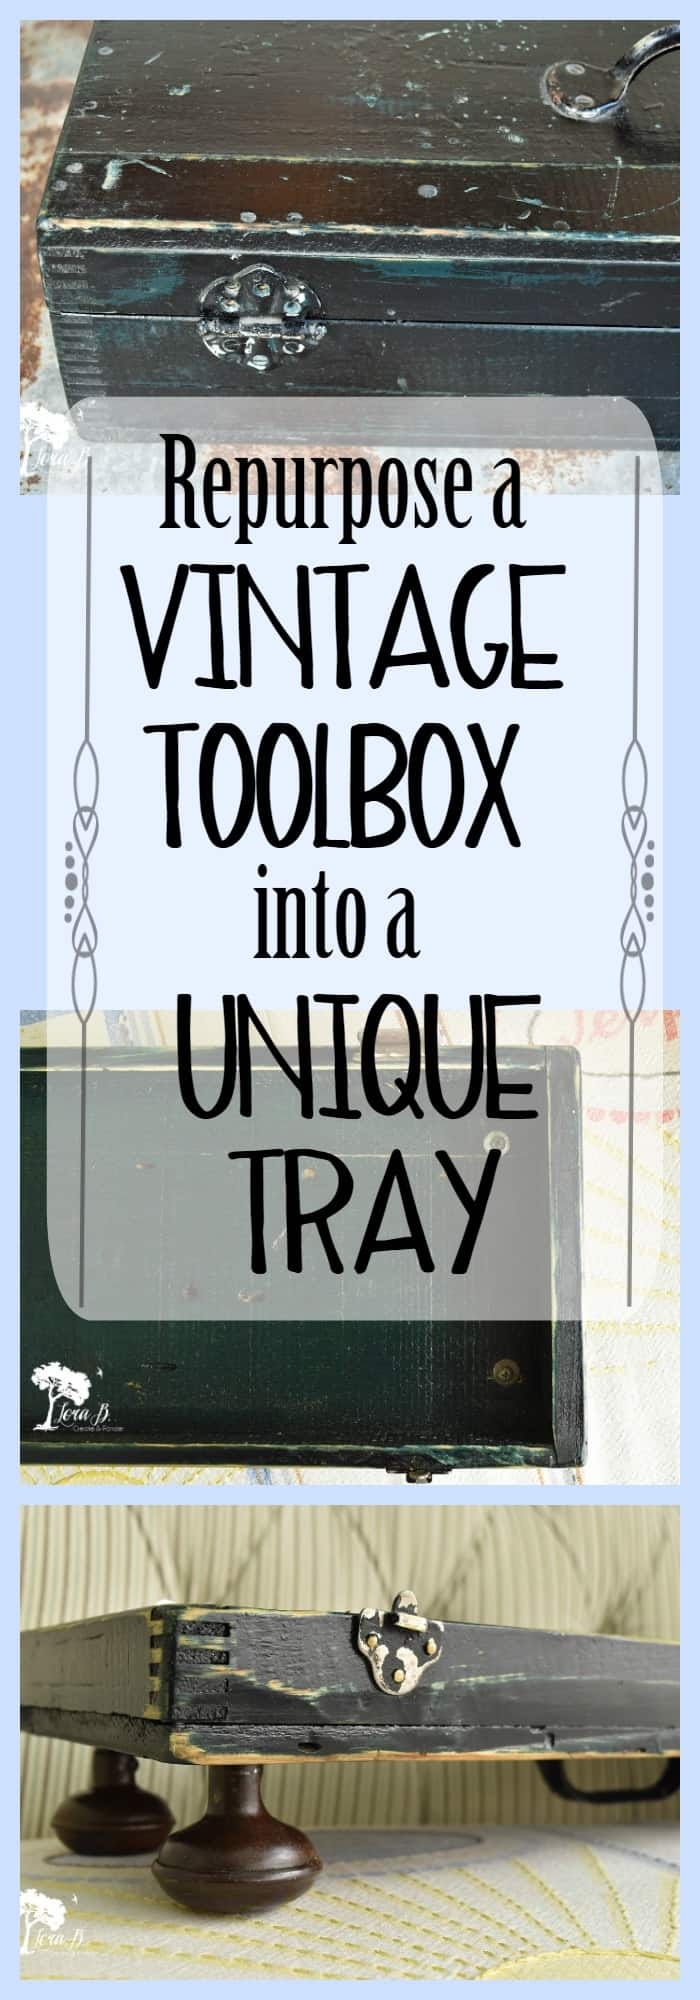 toolbox repurpose